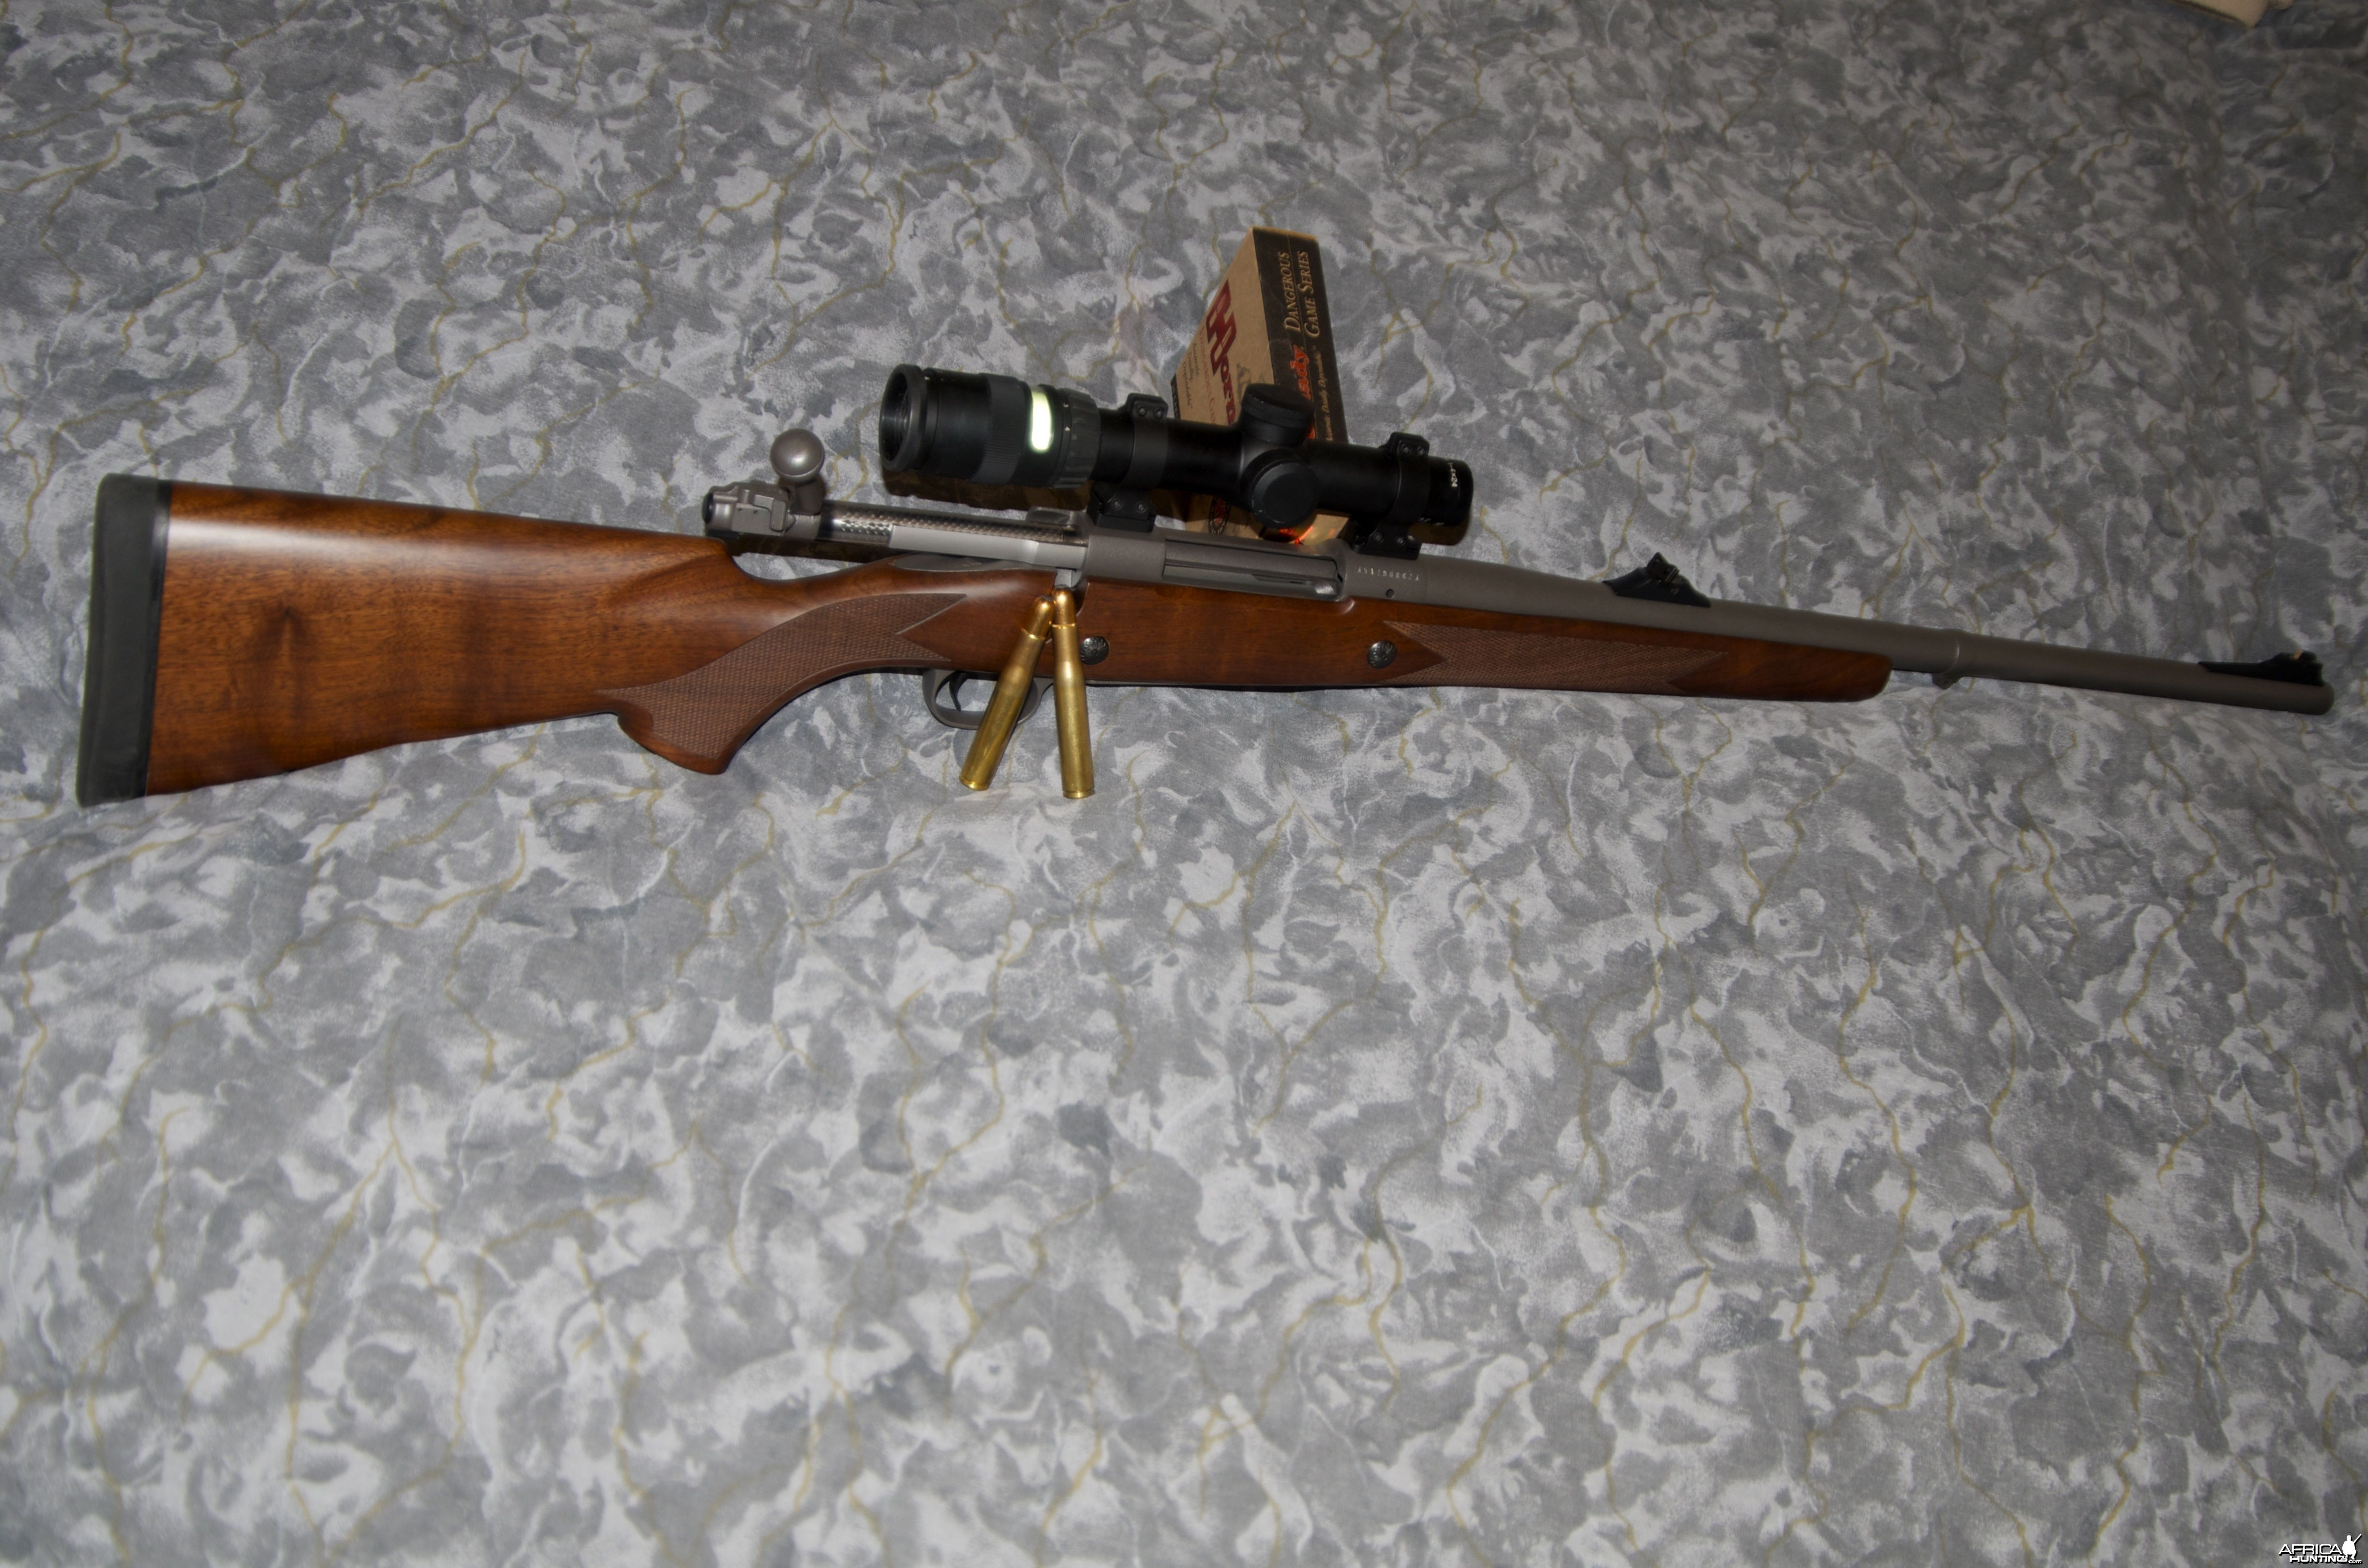 404 jeffery on a winchester 70 Safari (was a 416 Rem)